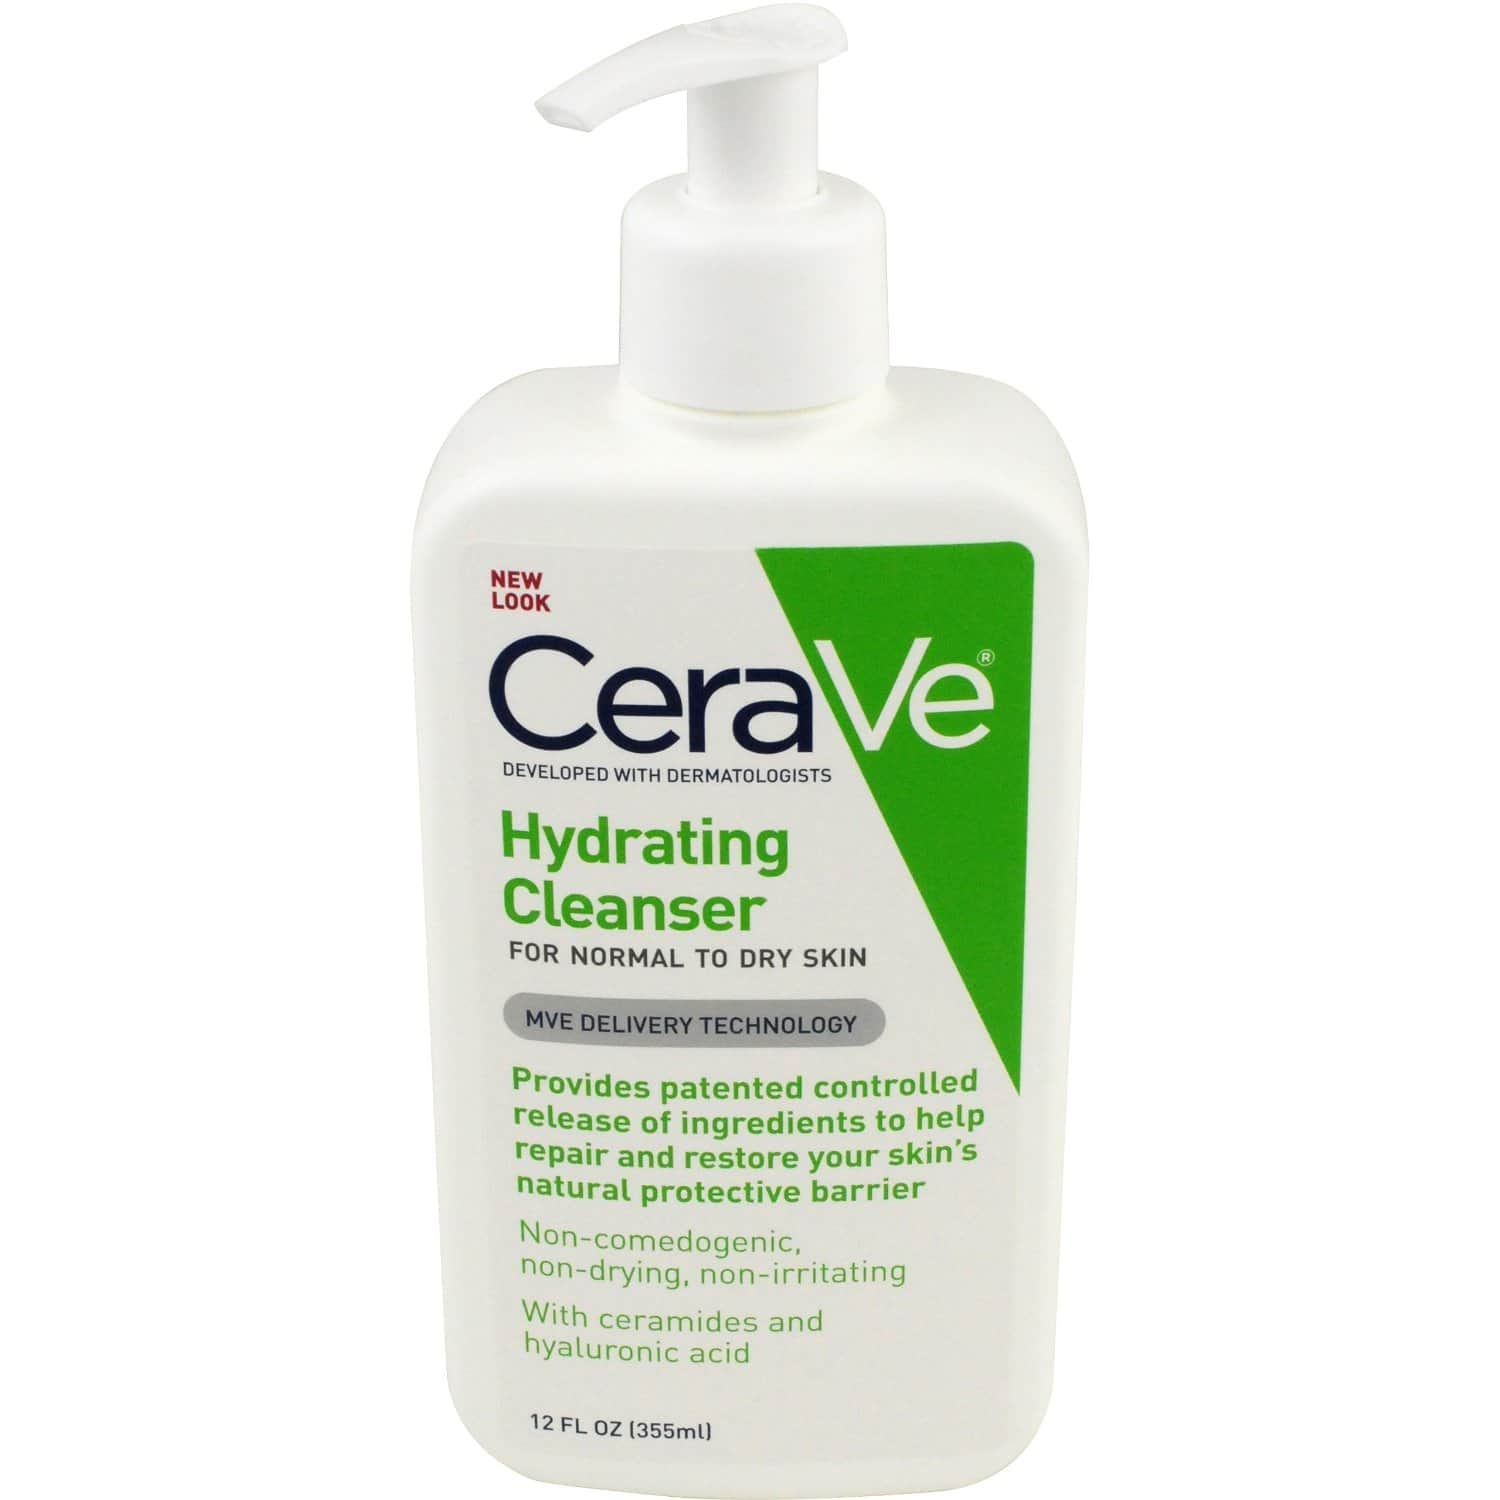 CeraVe Hydrating Cleanser 12oz Amazon $5.07 with 5 items S&S